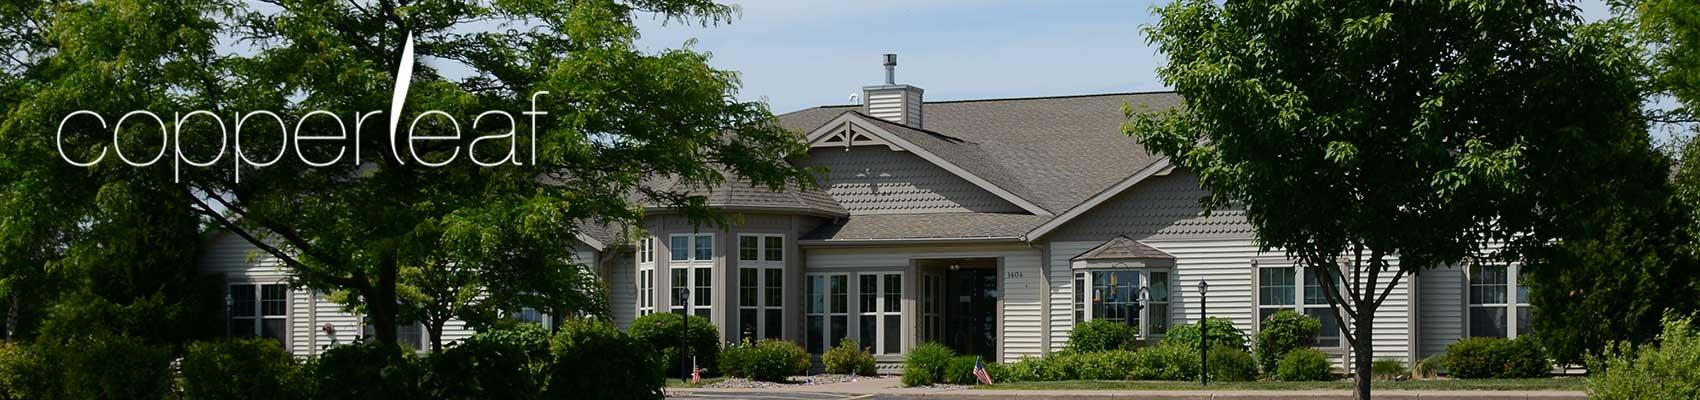 Assisted Living assisted living facilities Linwood Wisconsin Portage County